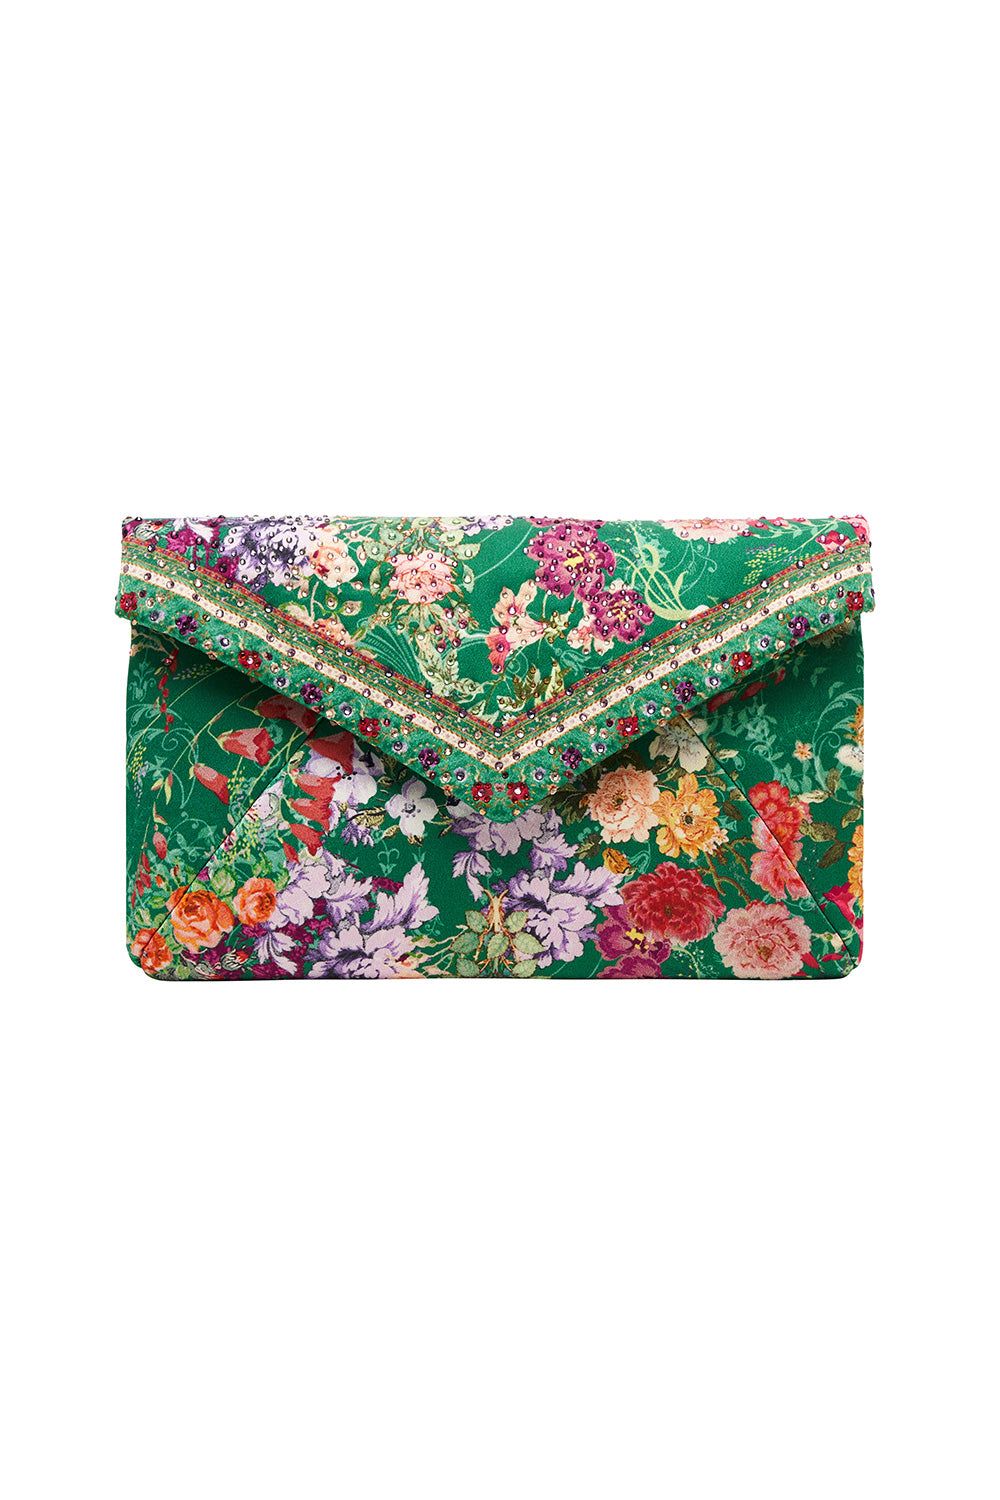 ENVELOPE CLUTCH DIARIES FROM A VILLA